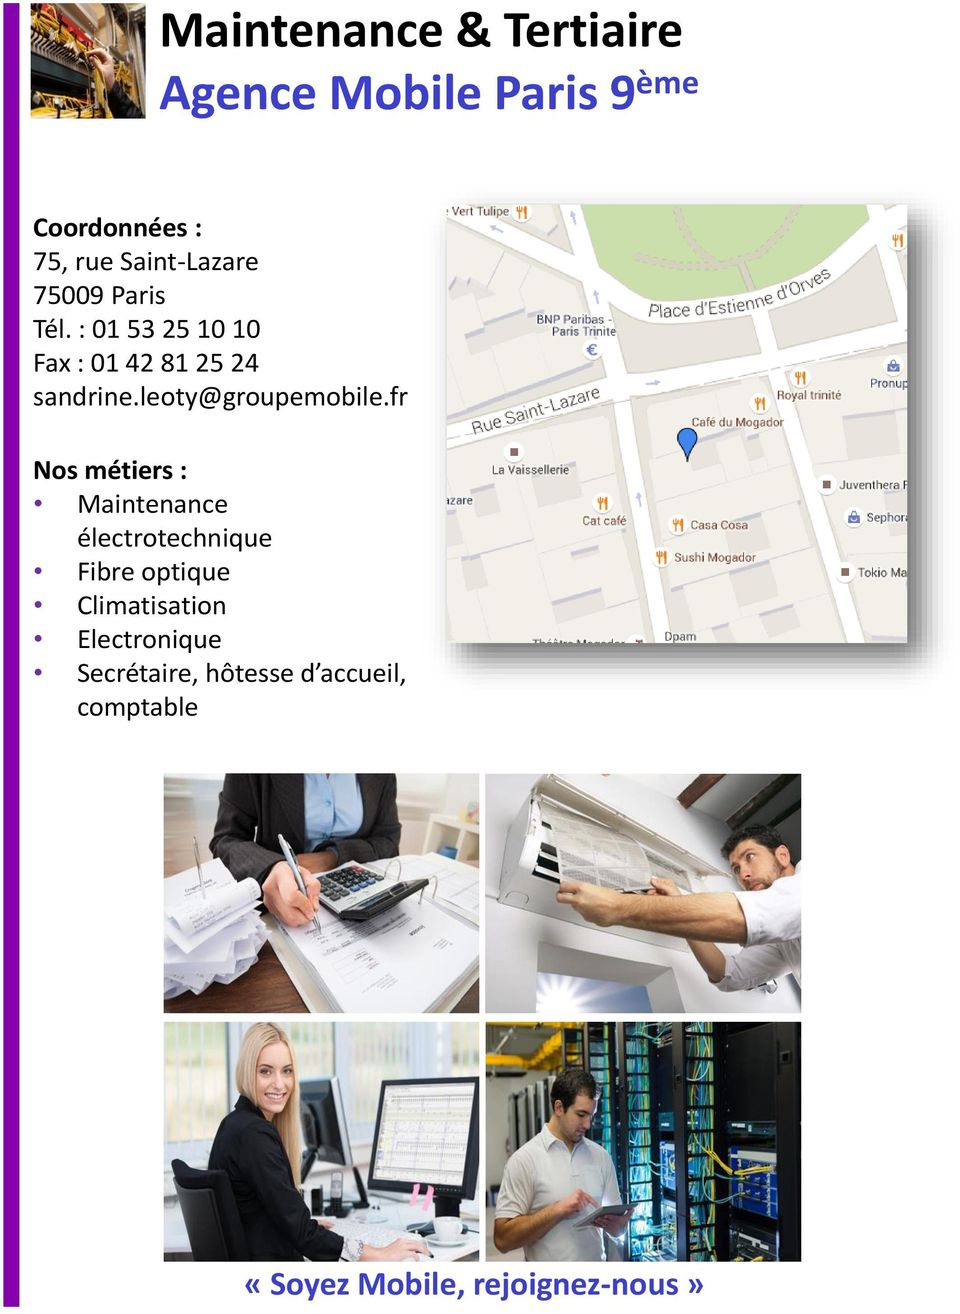 : 01 53 25 10 10 Fax : 01 42 81 25 24 sandrine.leoty@groupemobile.